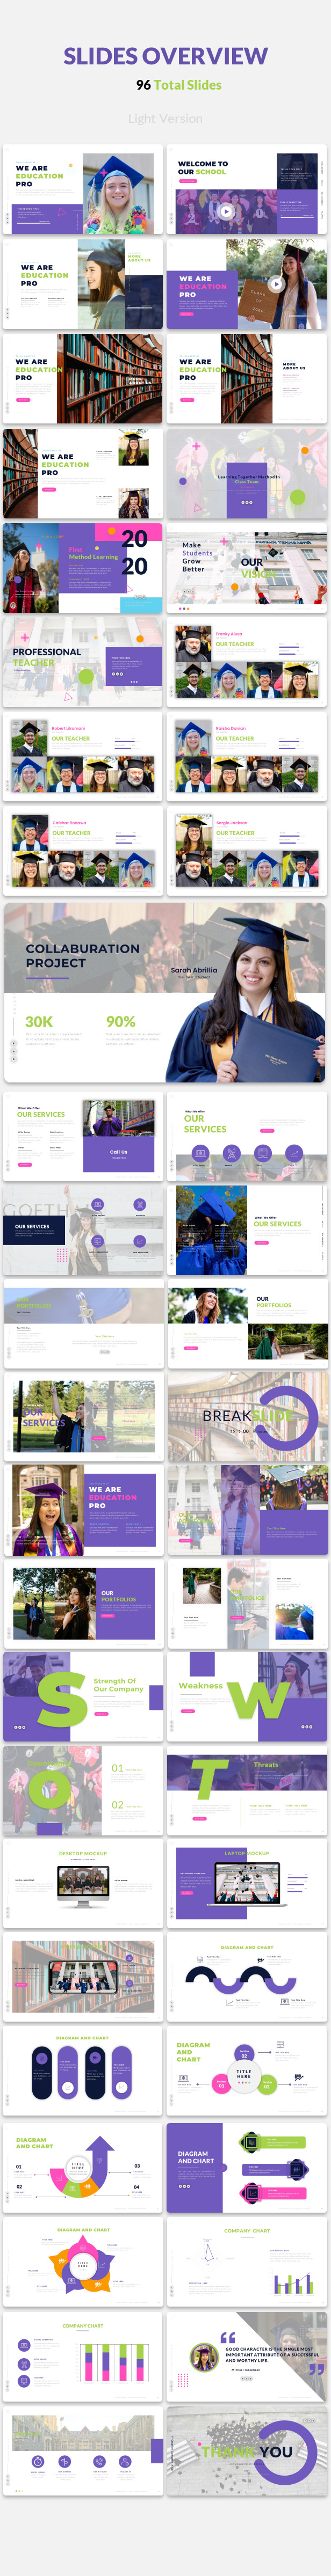 Education Pro - Powerpoint Presentation Template - 5